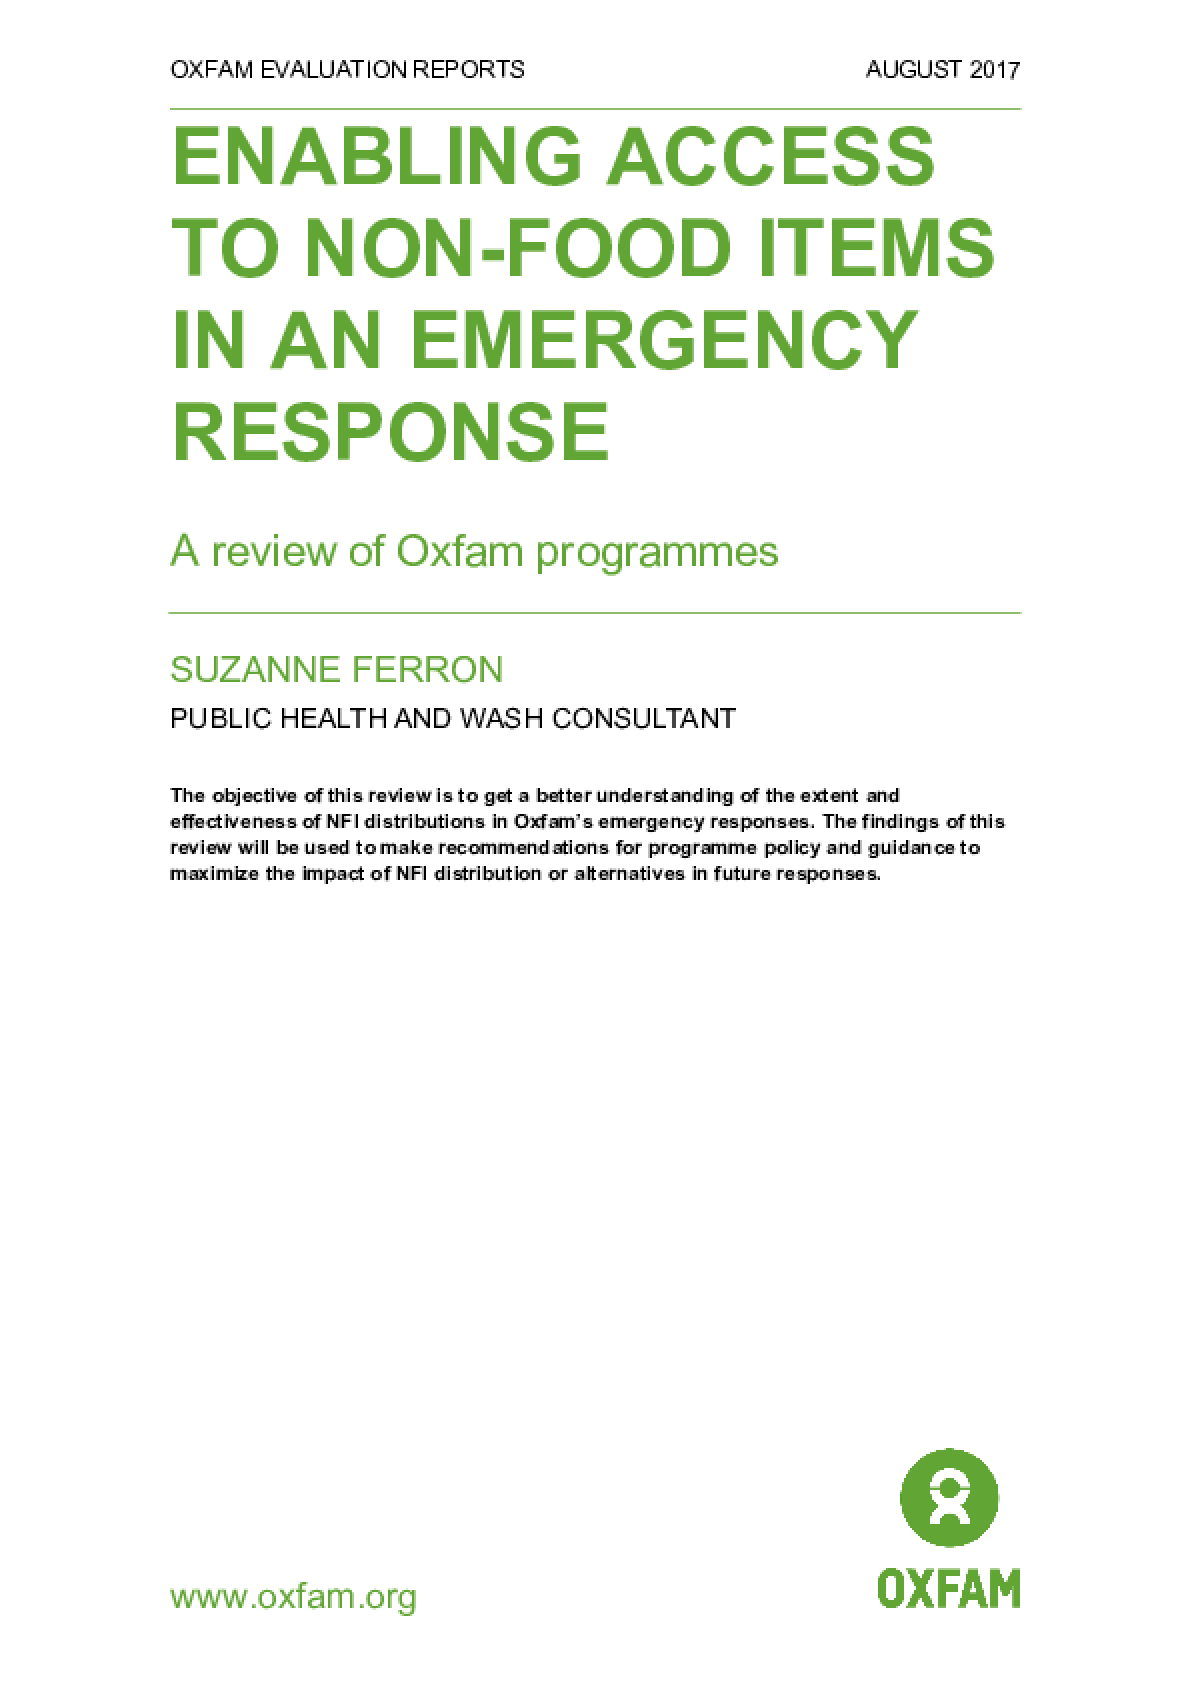 Enabling Access to Non-Food Items in an Emergency Response: A review of Oxfam programmes